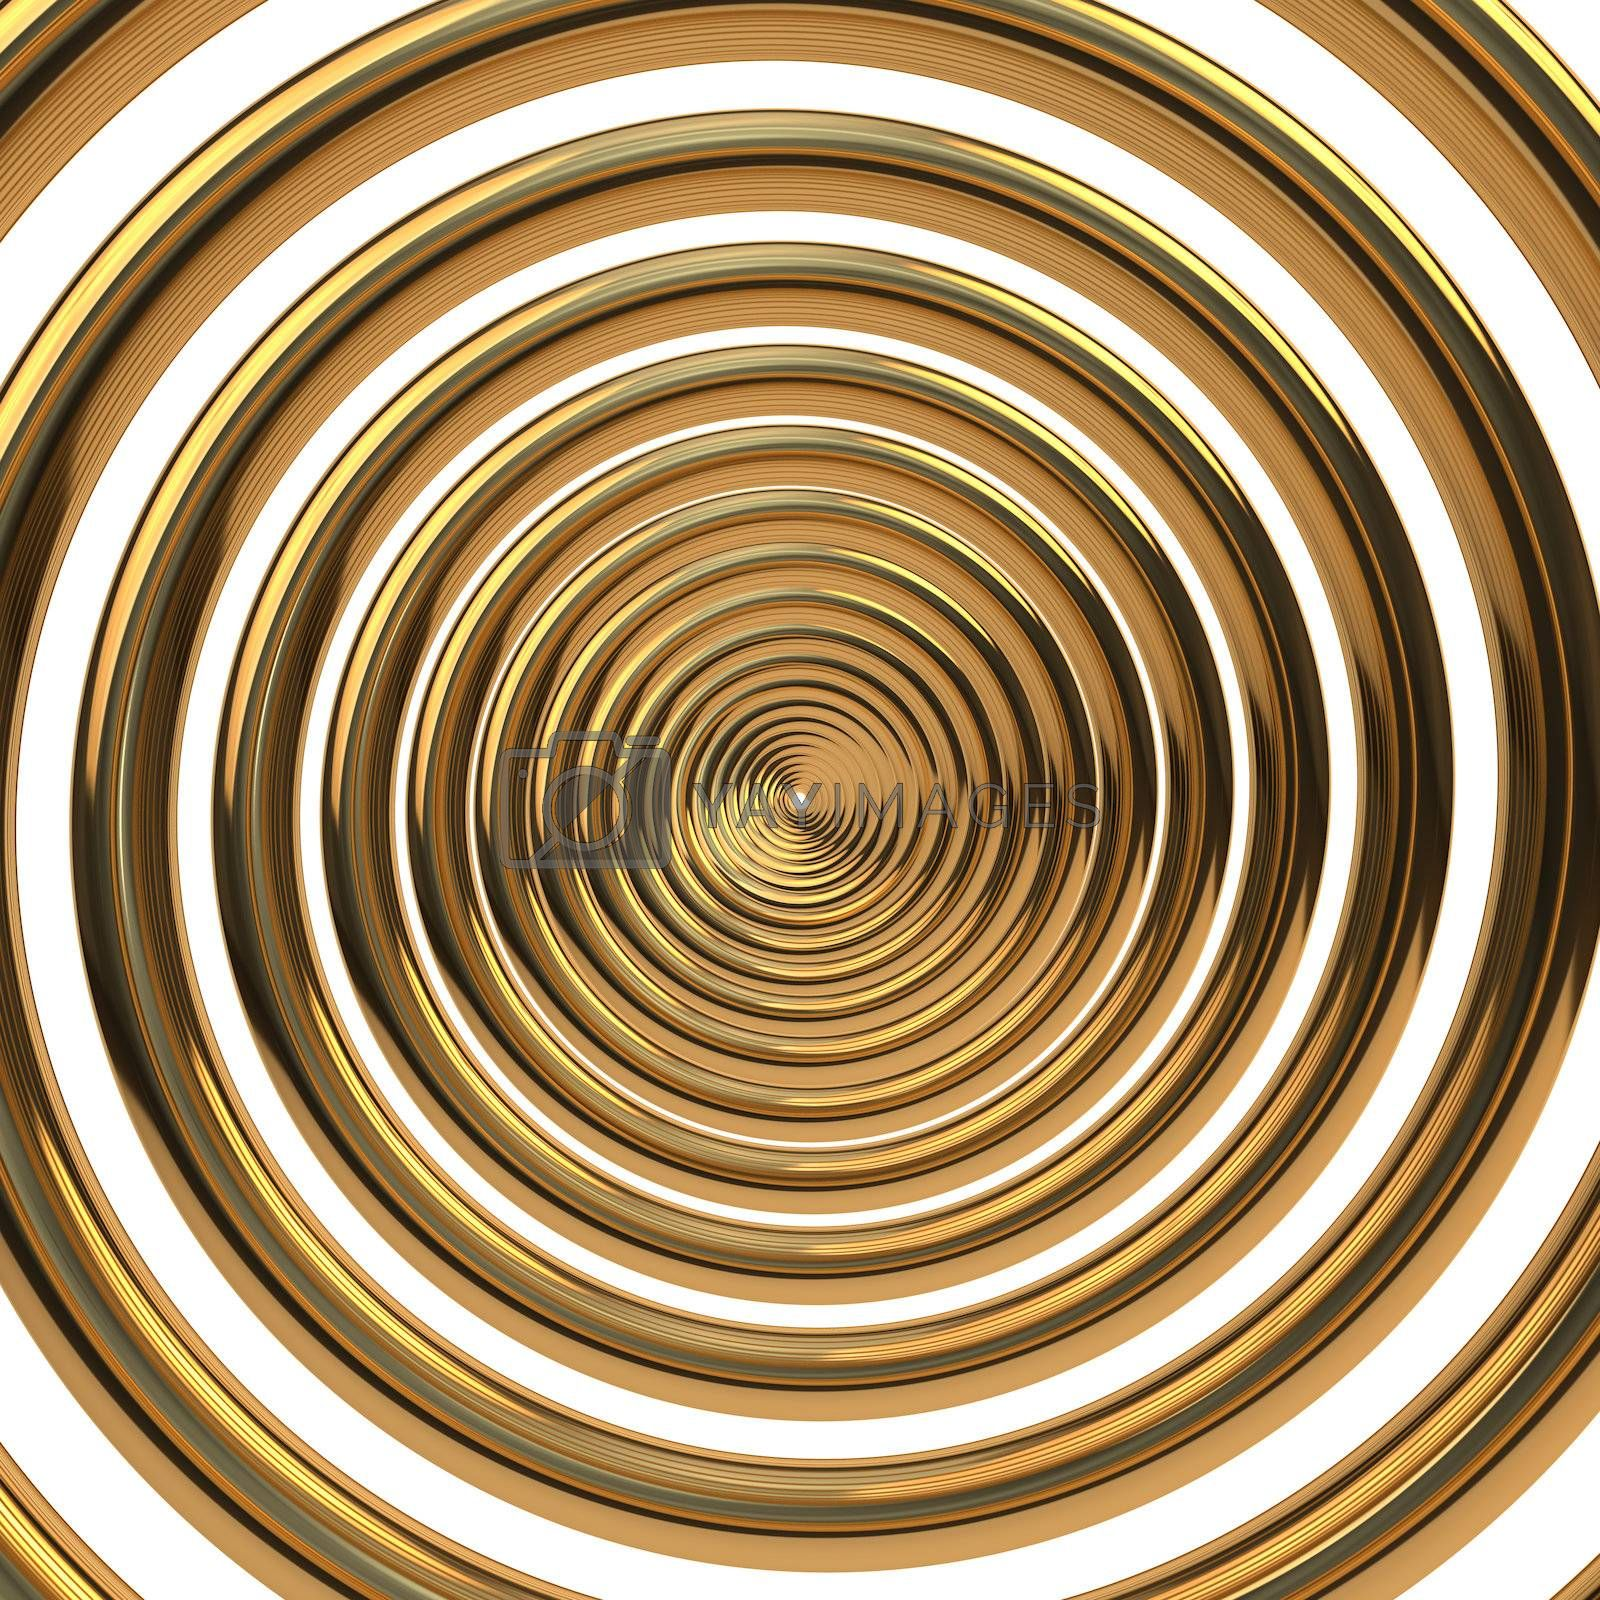 Concentric gold helix isolated on white